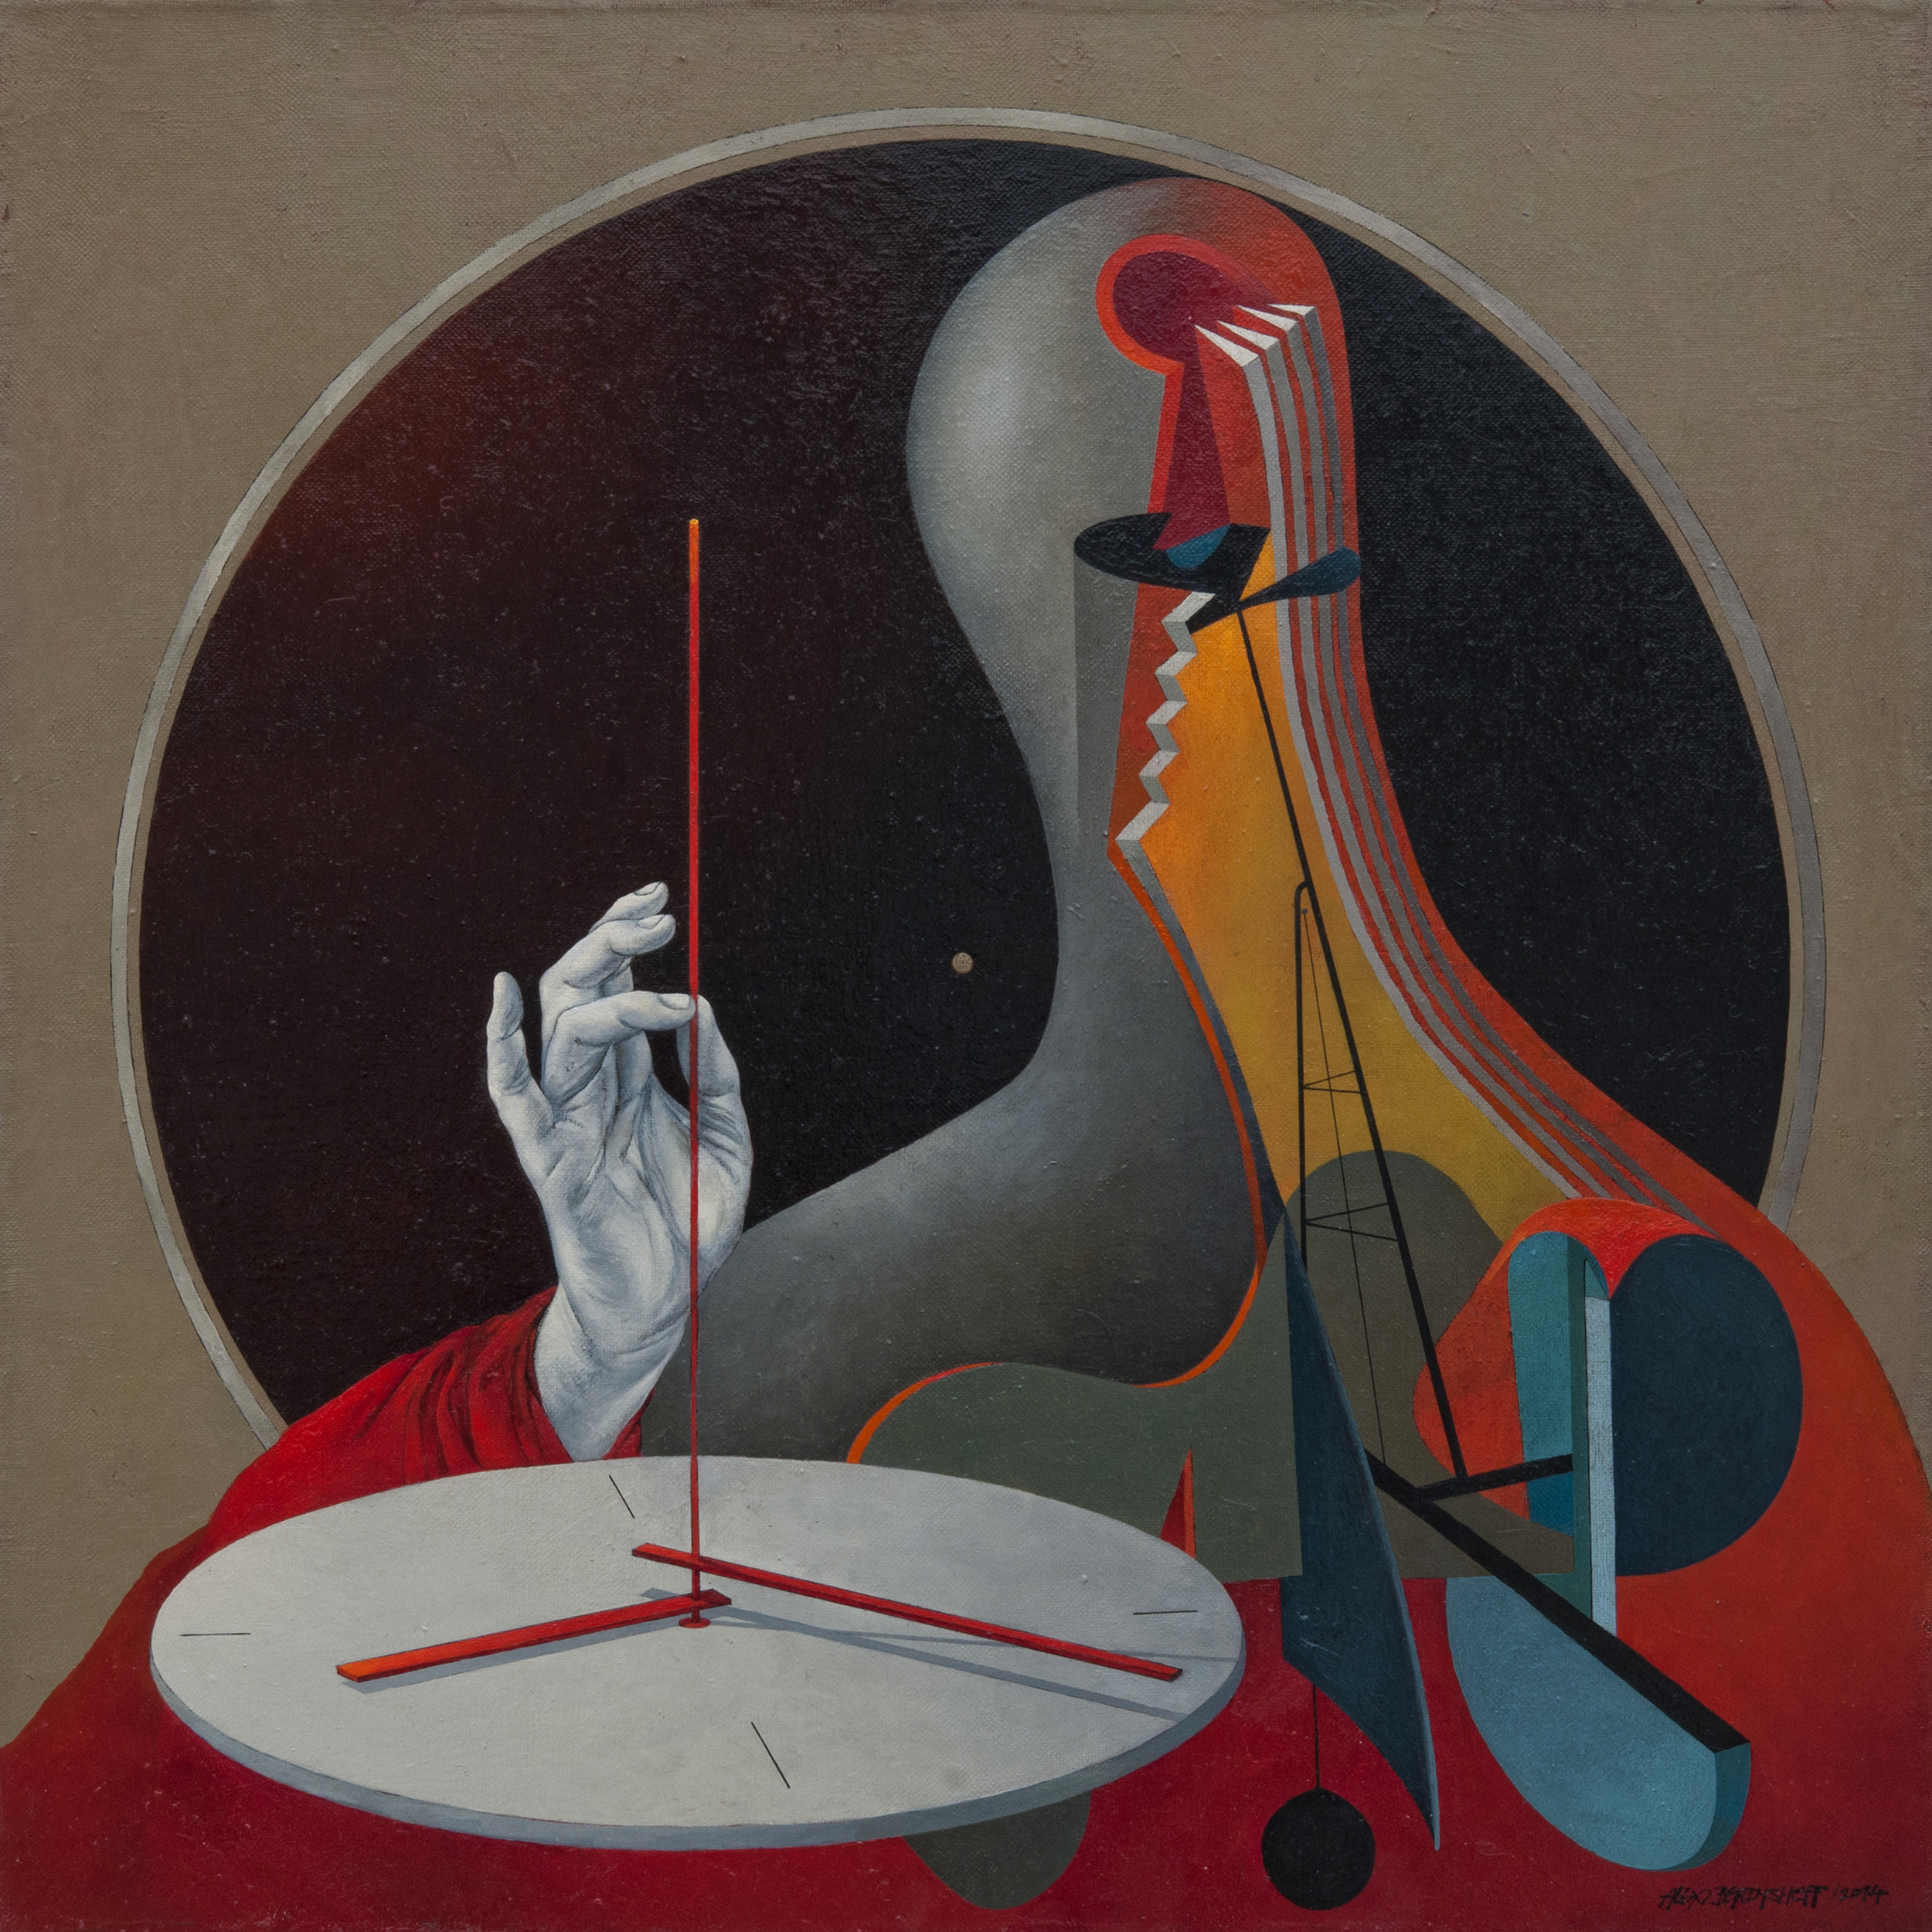 Time Keeper, oil on canvas, 85x85 cm, 2015